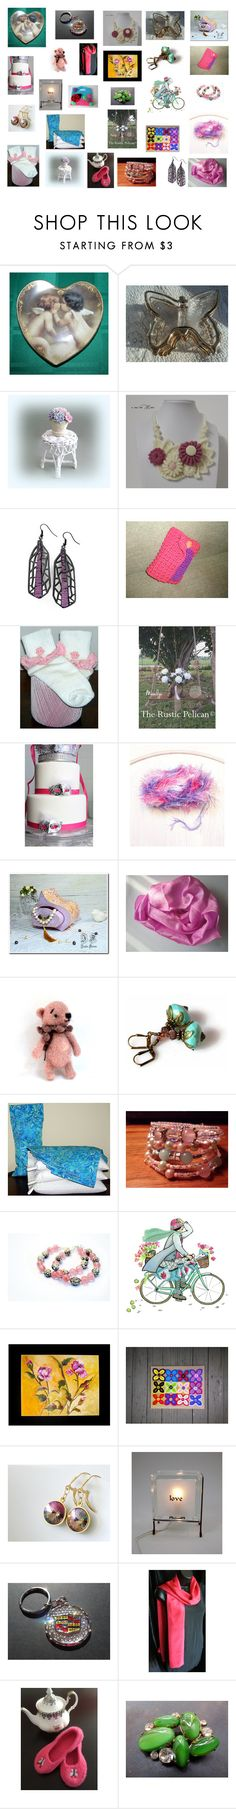 """Birthday Gifts for Her"" by einder ❤ liked on Polyvore featuring Masquerade"